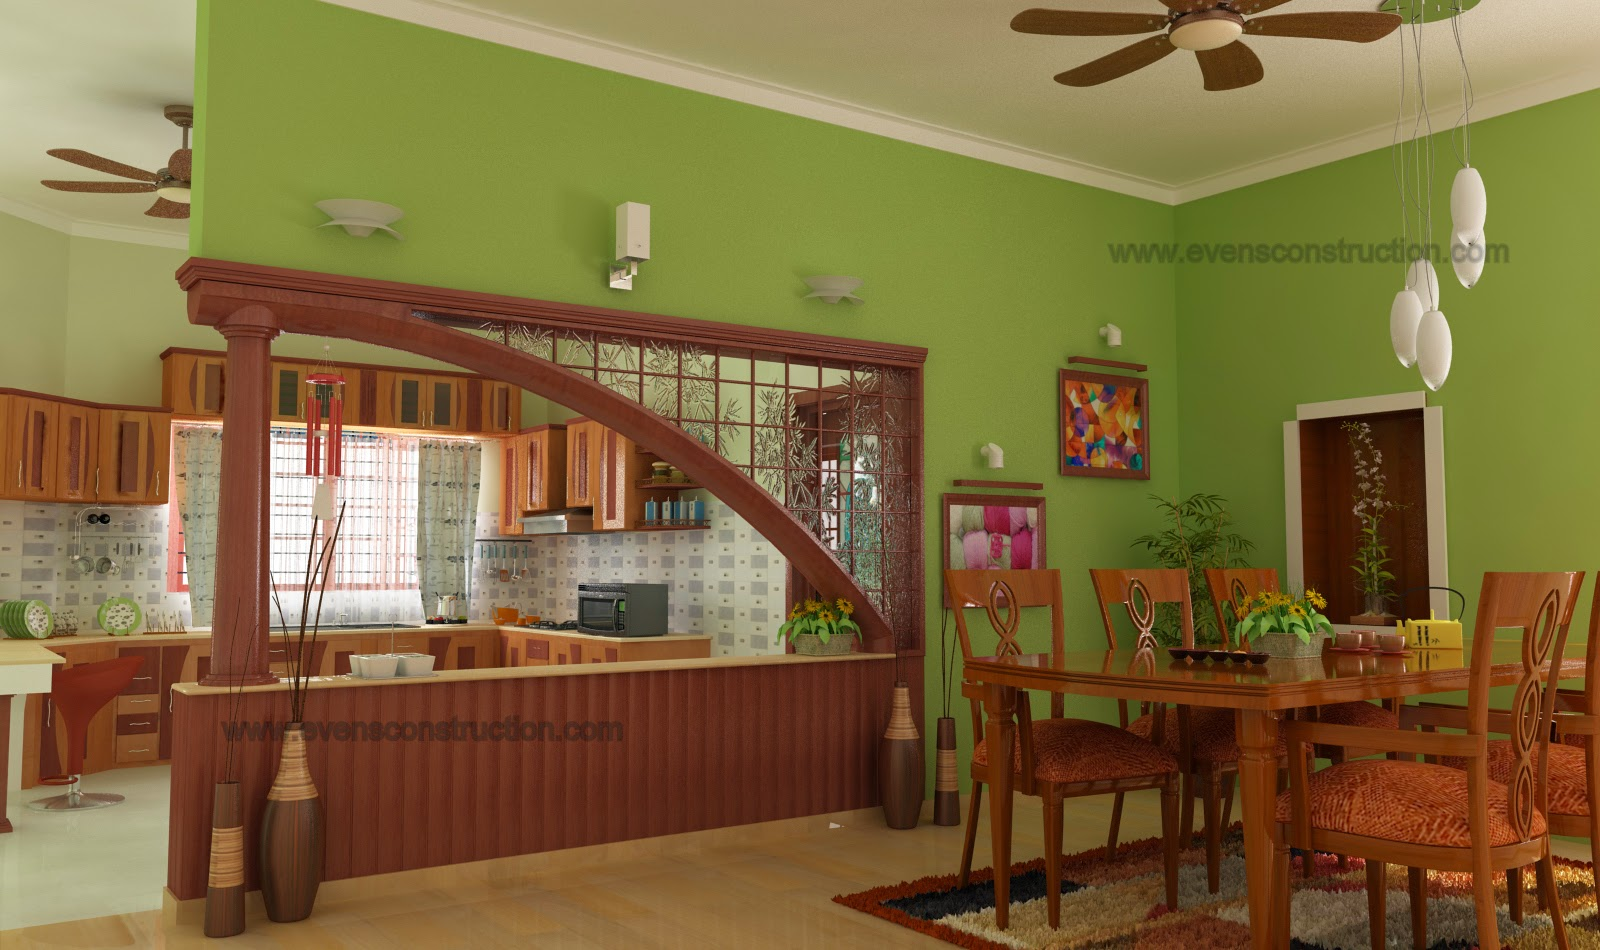 Evens construction pvt ltd interior design of kerala home for Dining room designs kerala